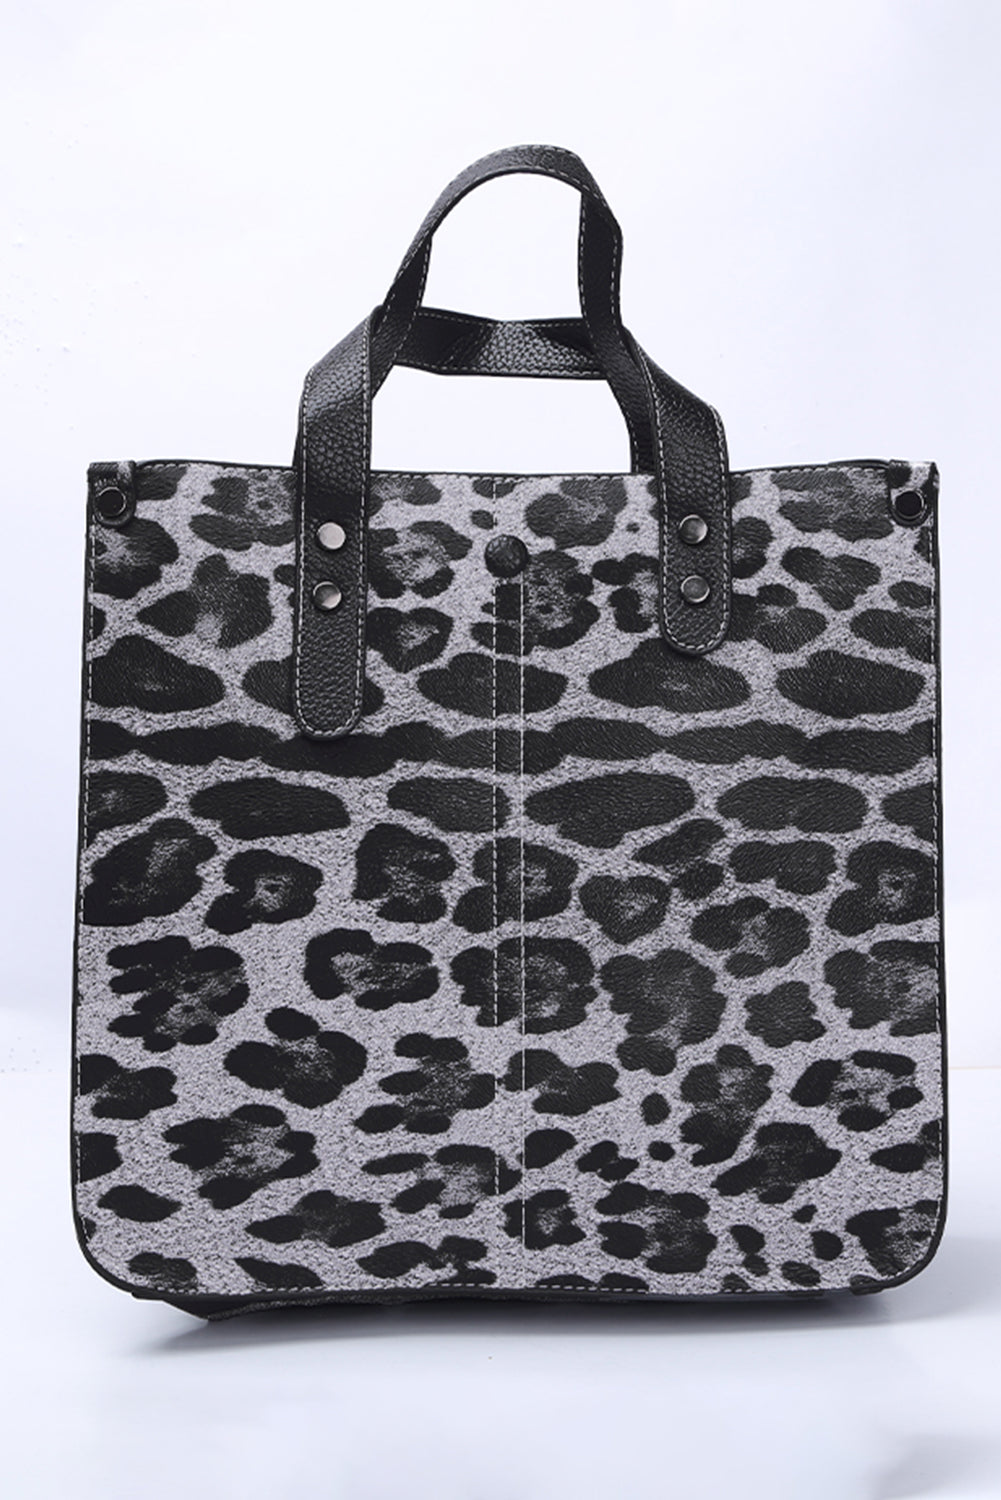 Gray Leopard Shoulder Bag and Clutch Bags Discount Designer Fashion Clothes Shoes Bags Women Men Kids Children Black Owned Business